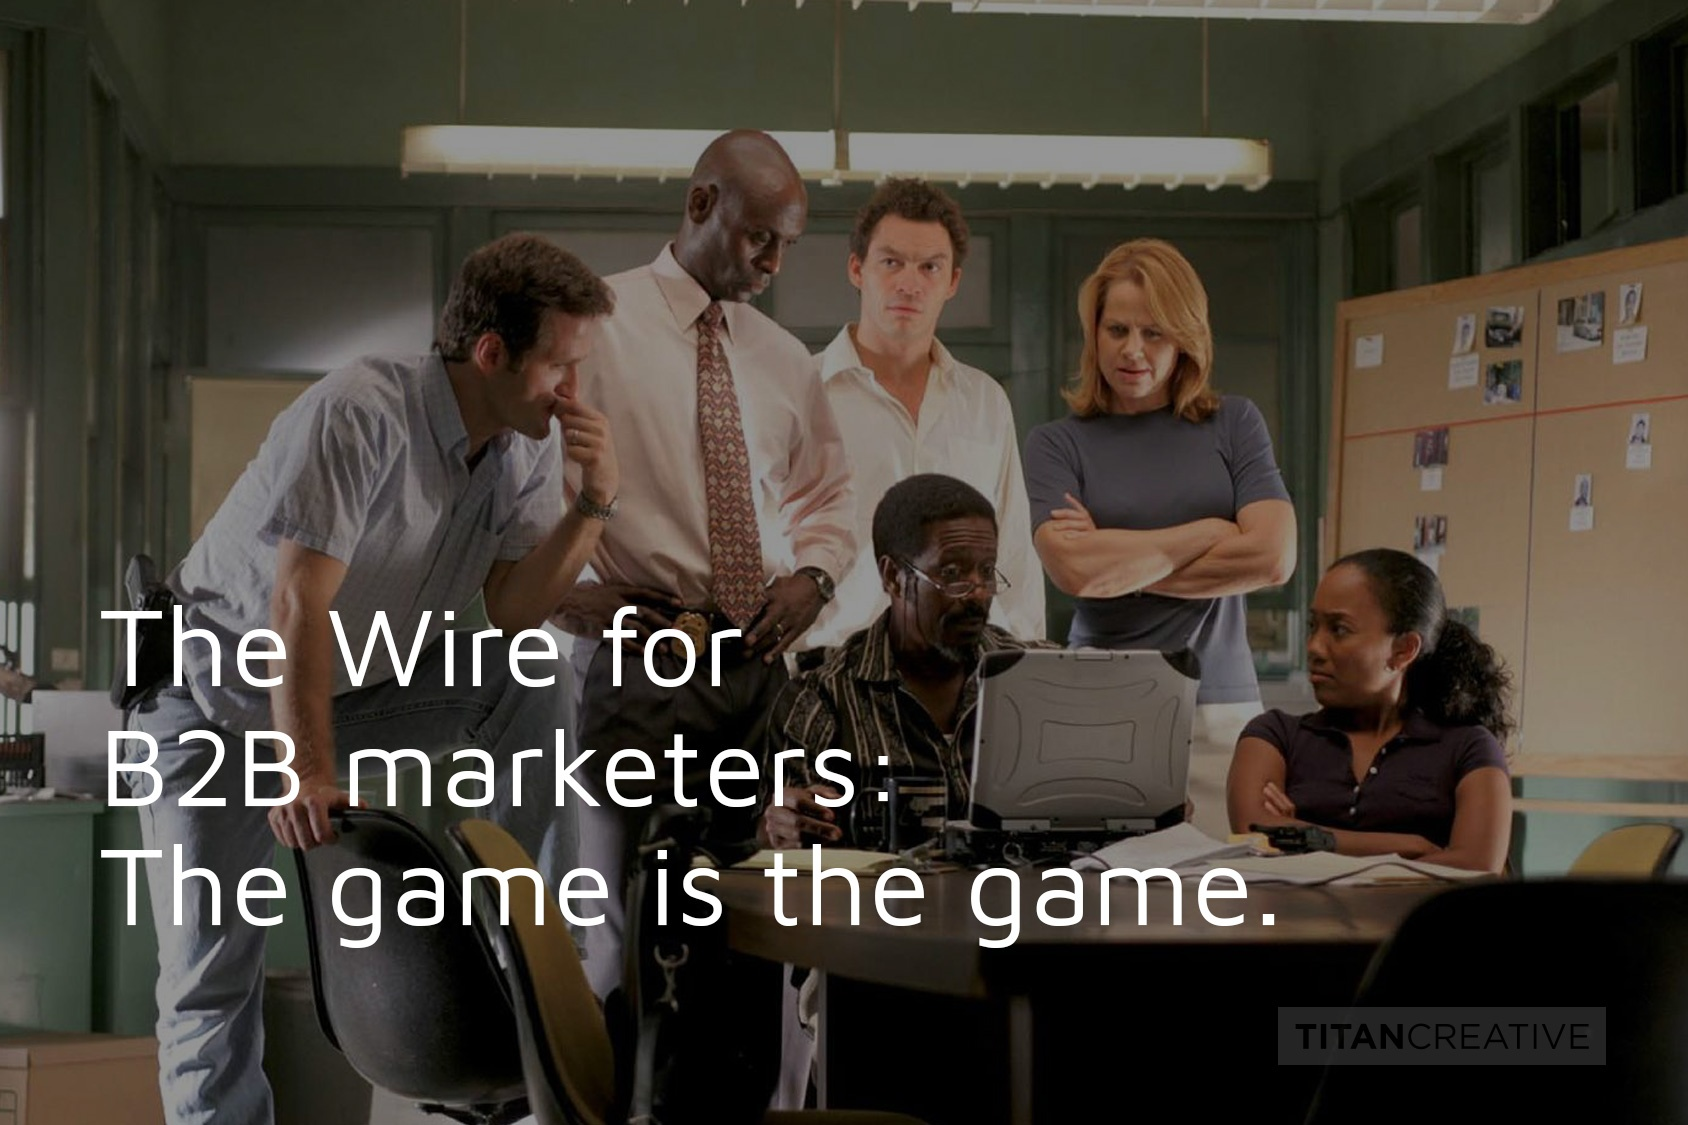 The Wire for B2B marketers: The game is the game.